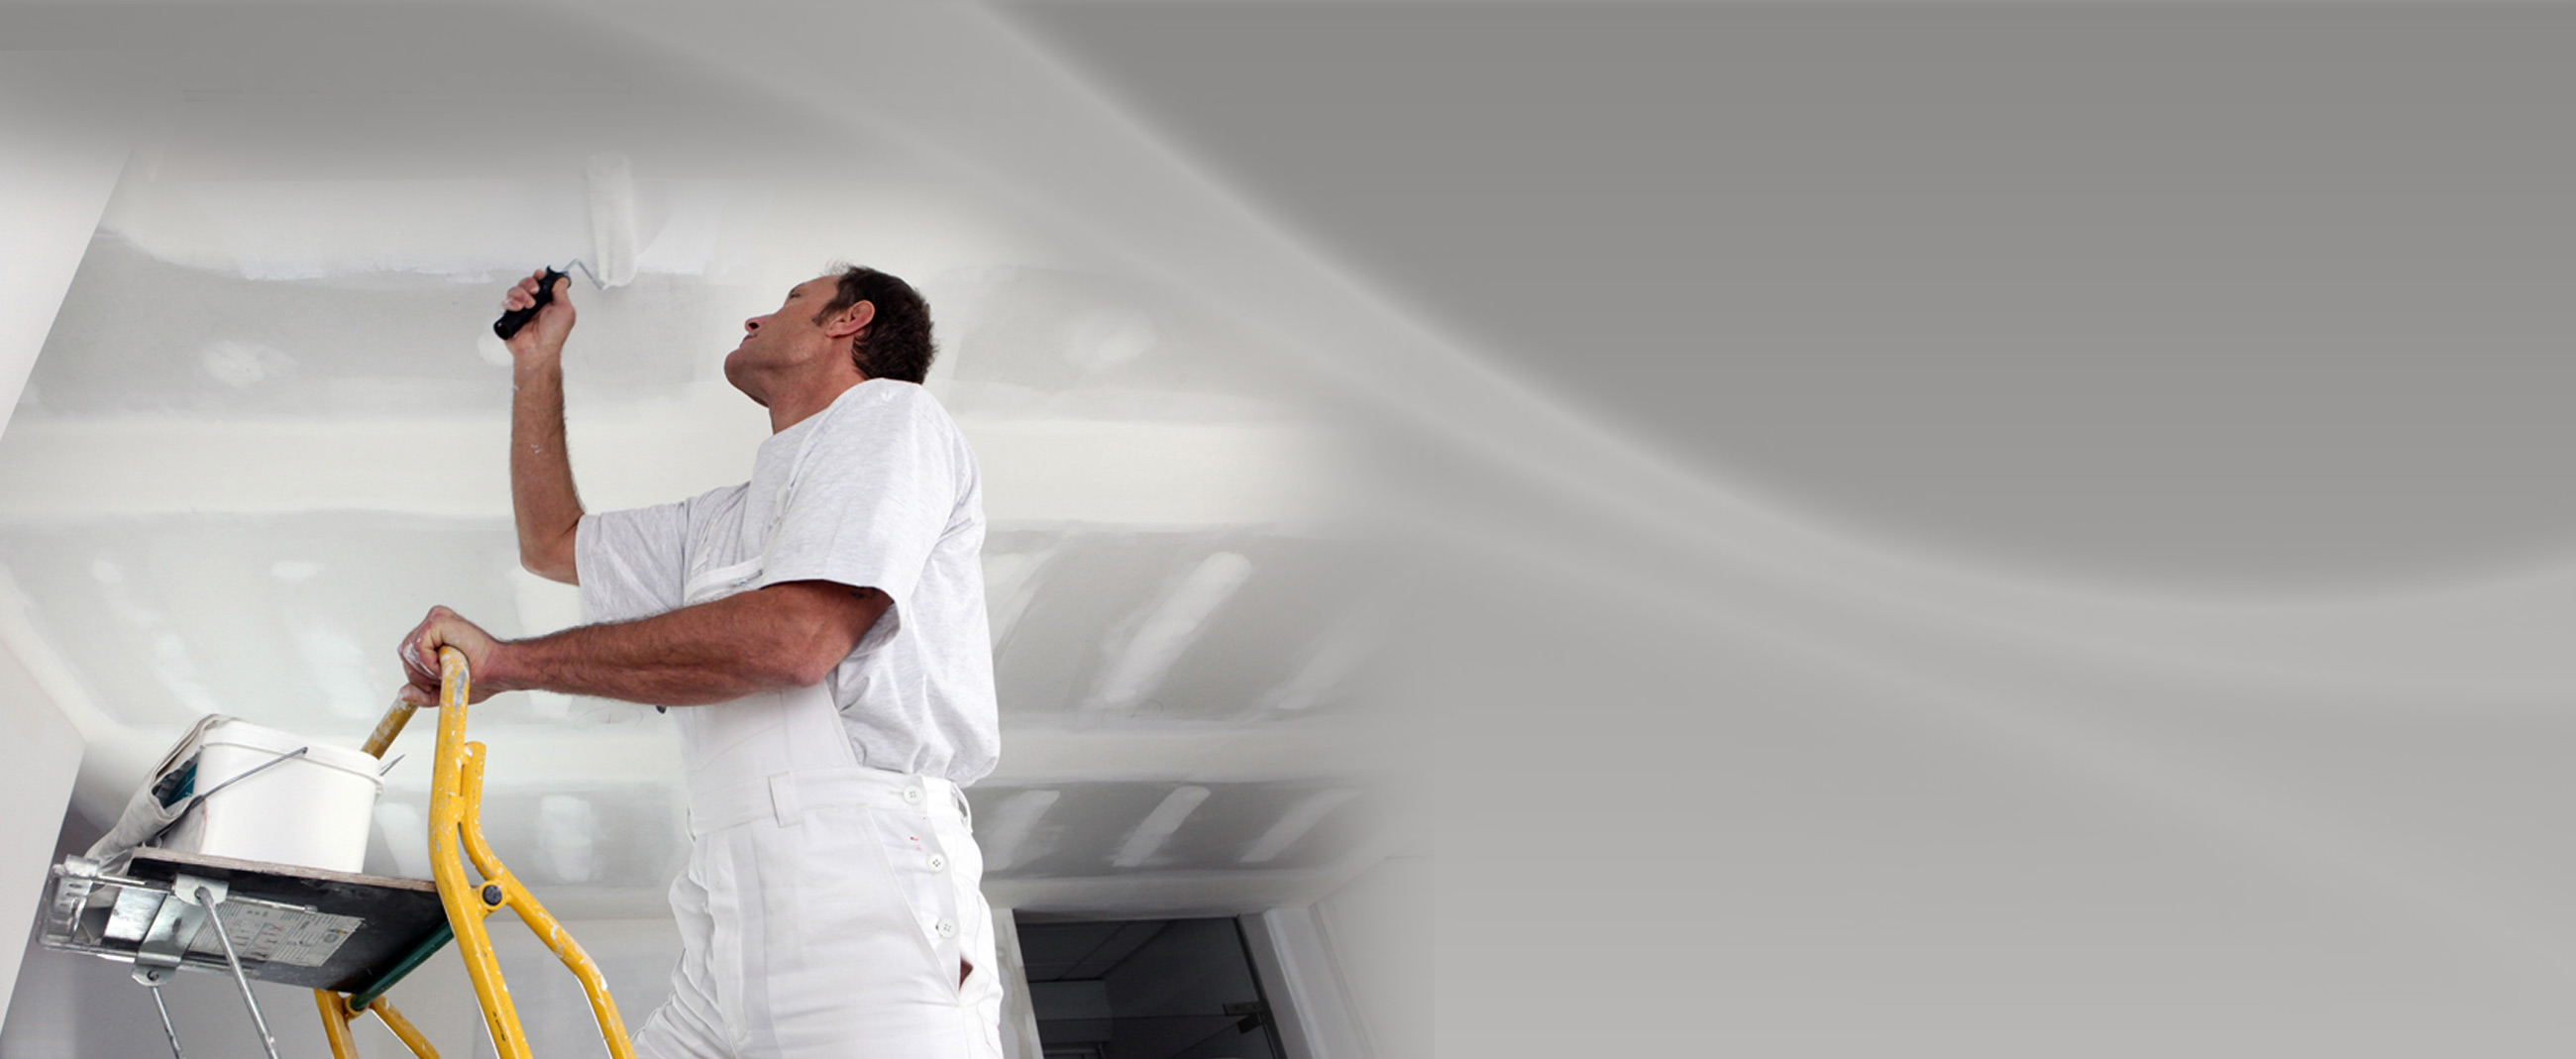 Drywall Painting Amp Repair Protegrity Painting Tucson